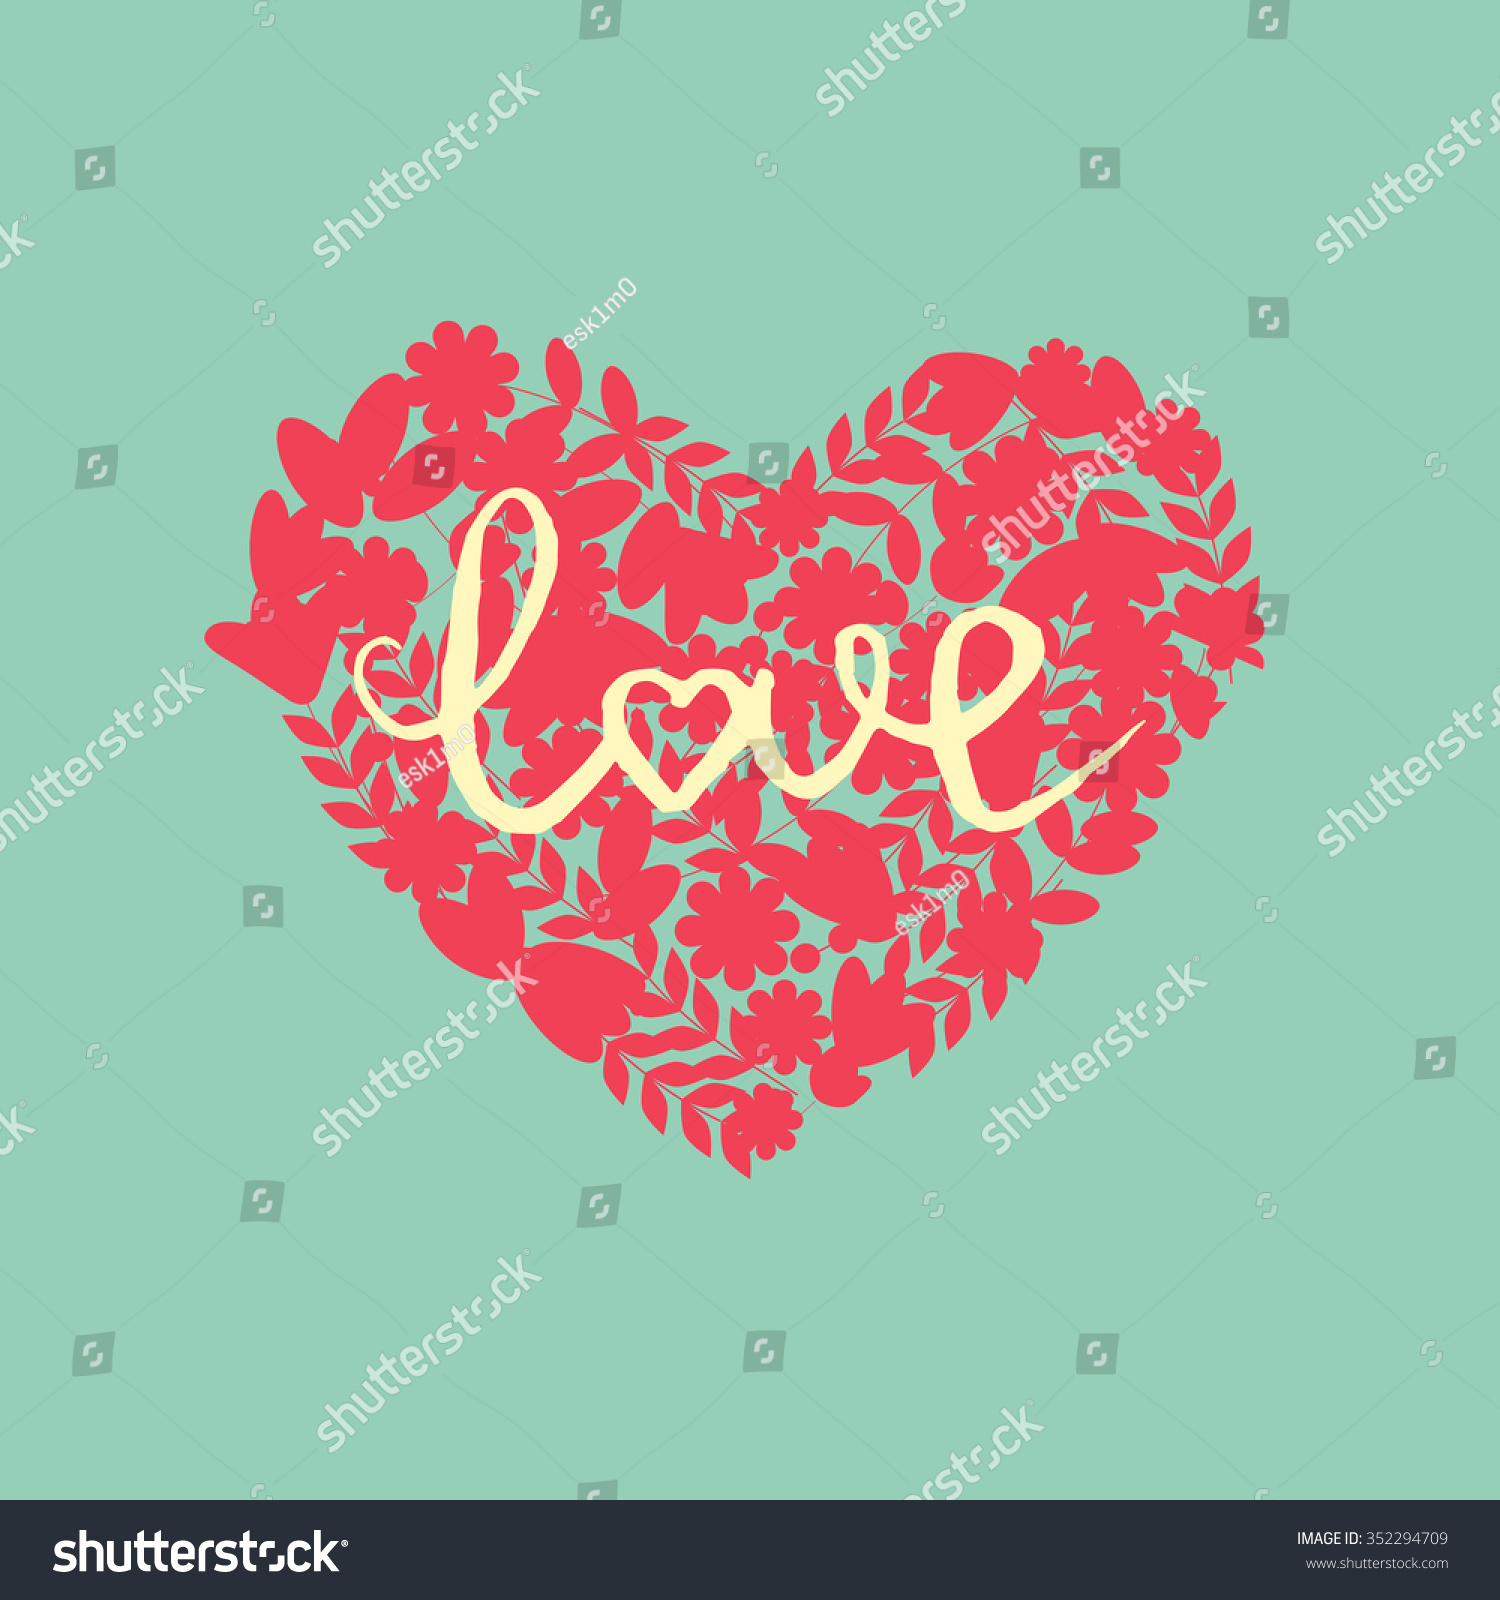 Valentine Heart Hand Drawn Lettering Love Stock Vector 352294709 ...